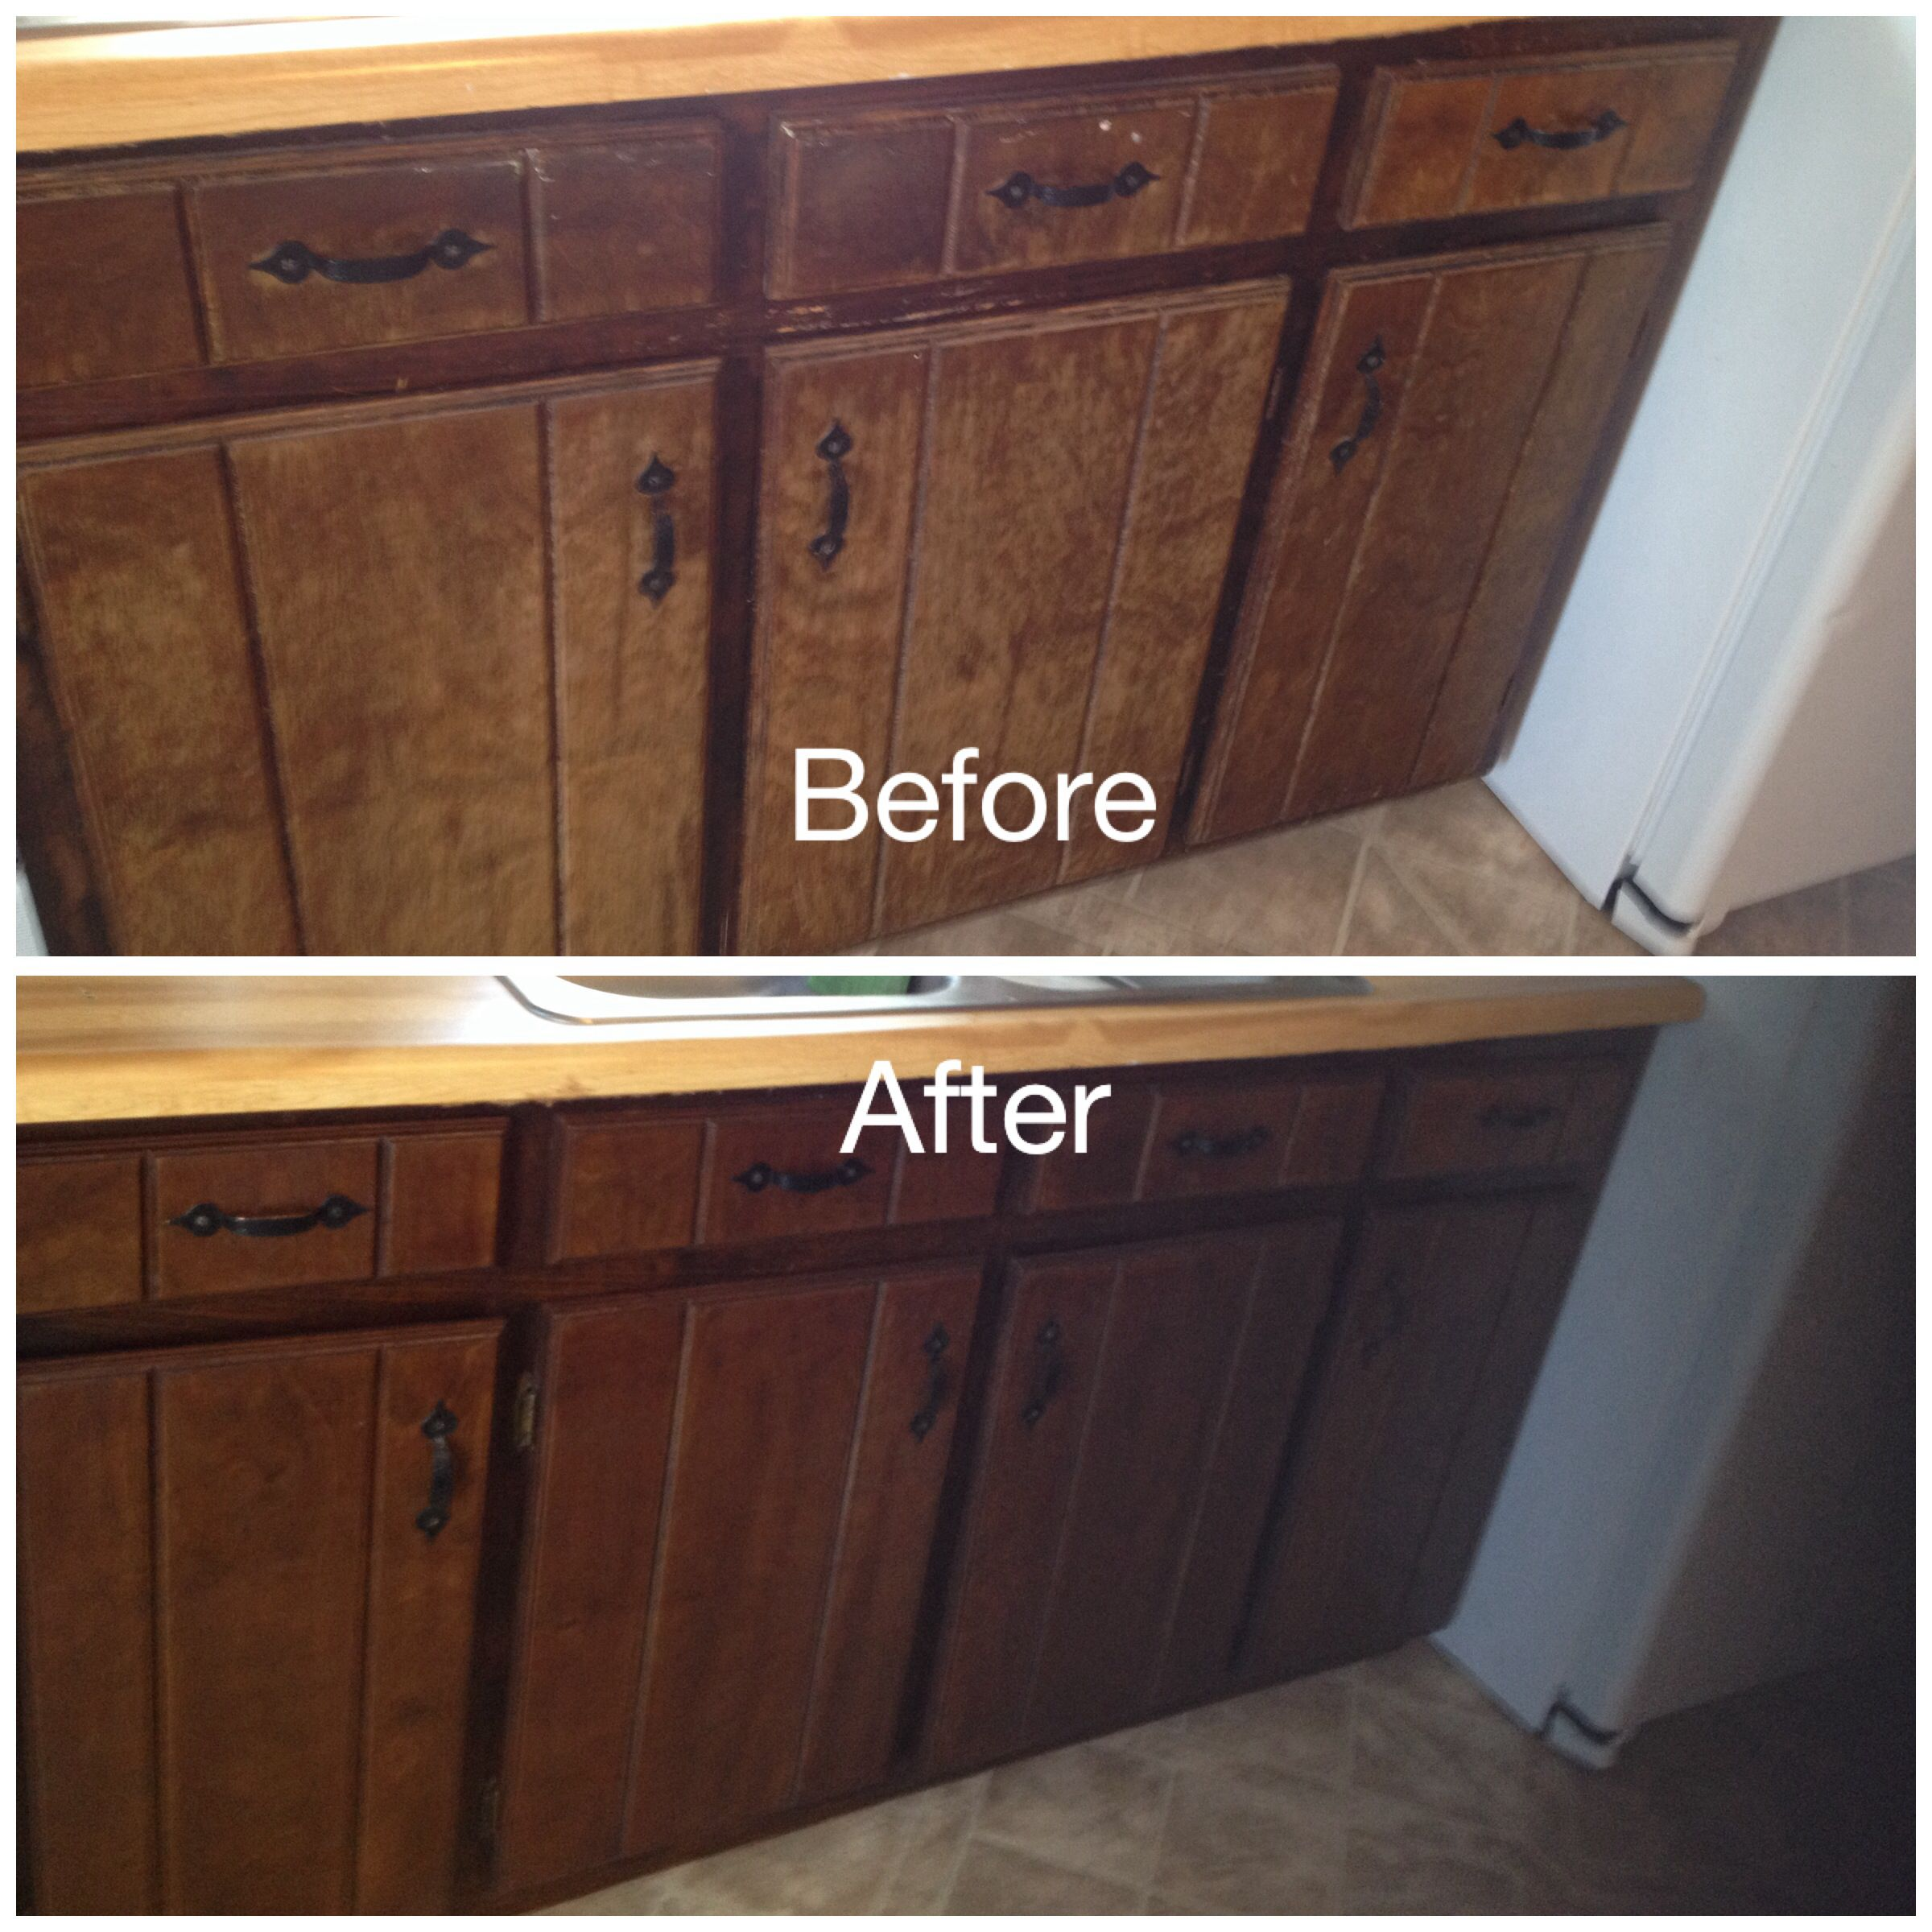 staining kitchen cabinets My worn kitchen cabinets stained with Minwax Gel Stain in Hickory removed doors